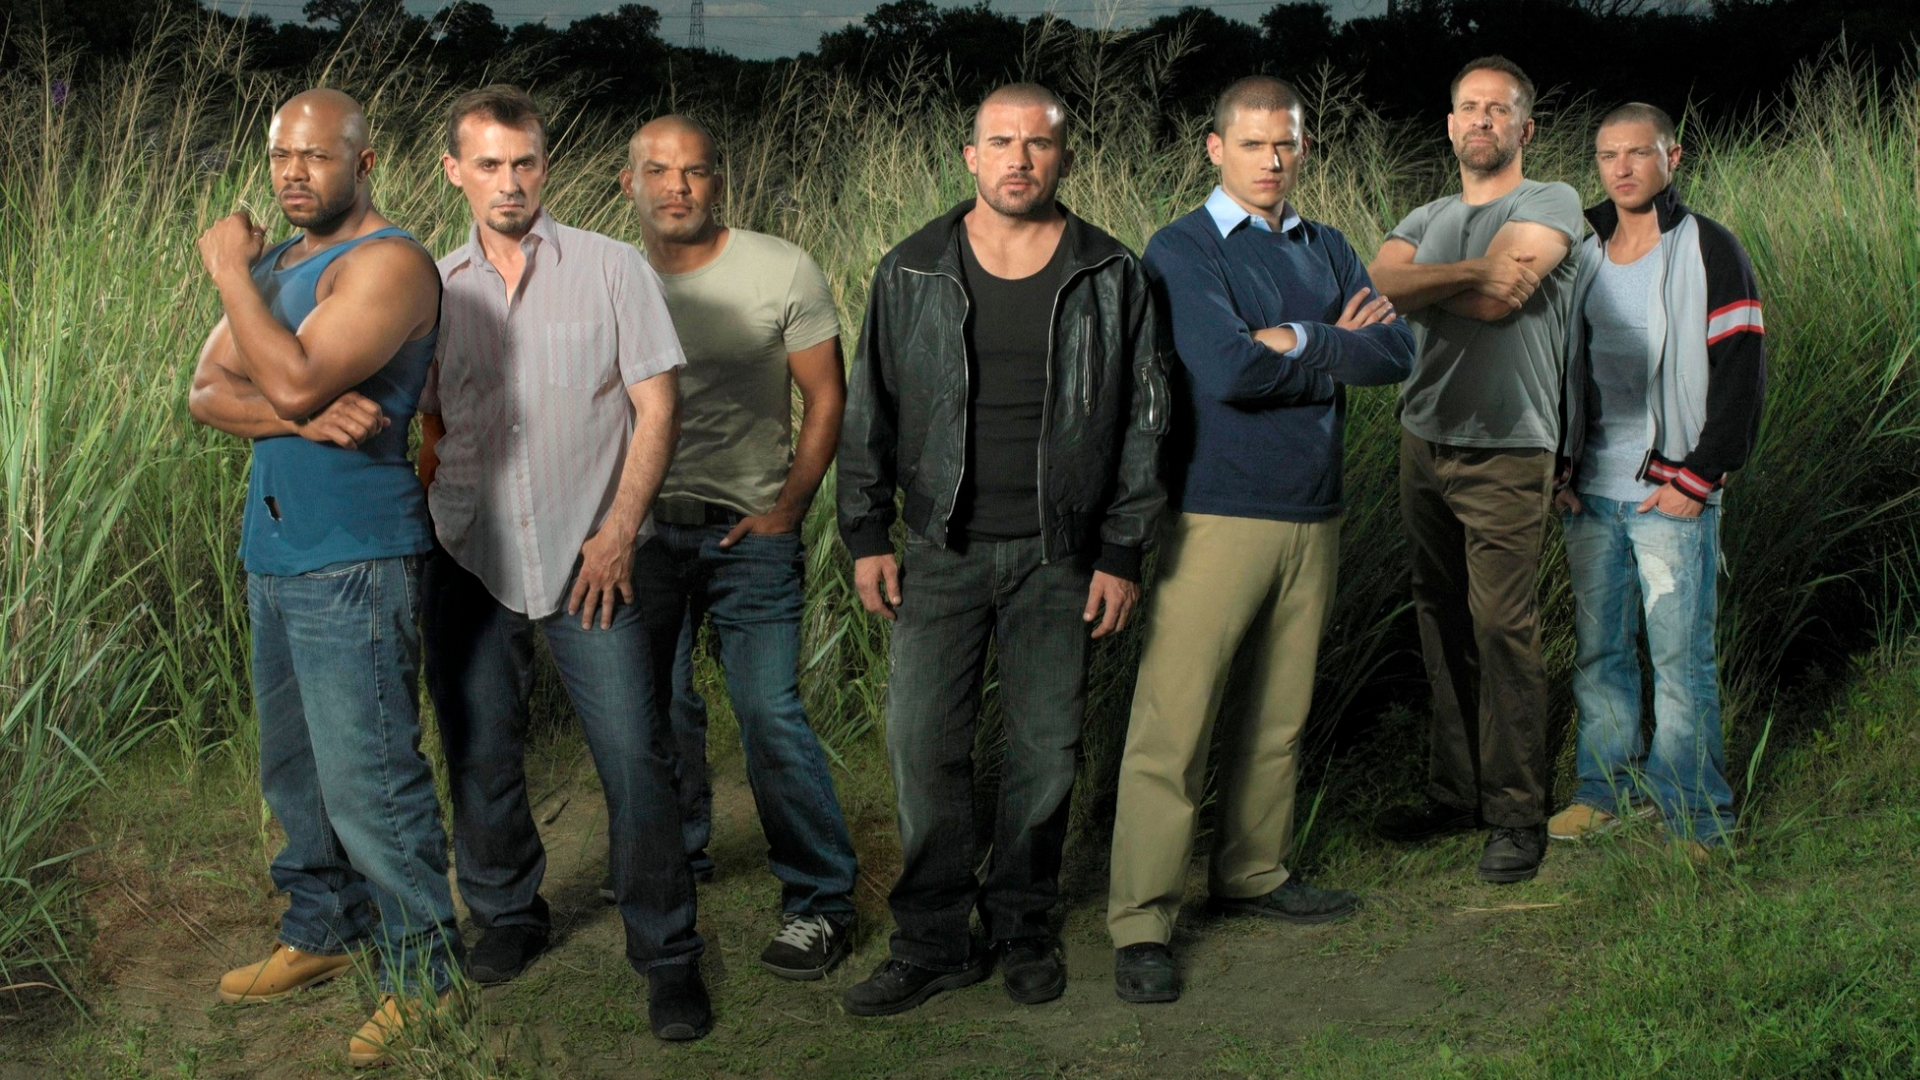 Prison Break Hd Wallpapers Download Prison Break Hd Wallpaper Background Image 1920x1080